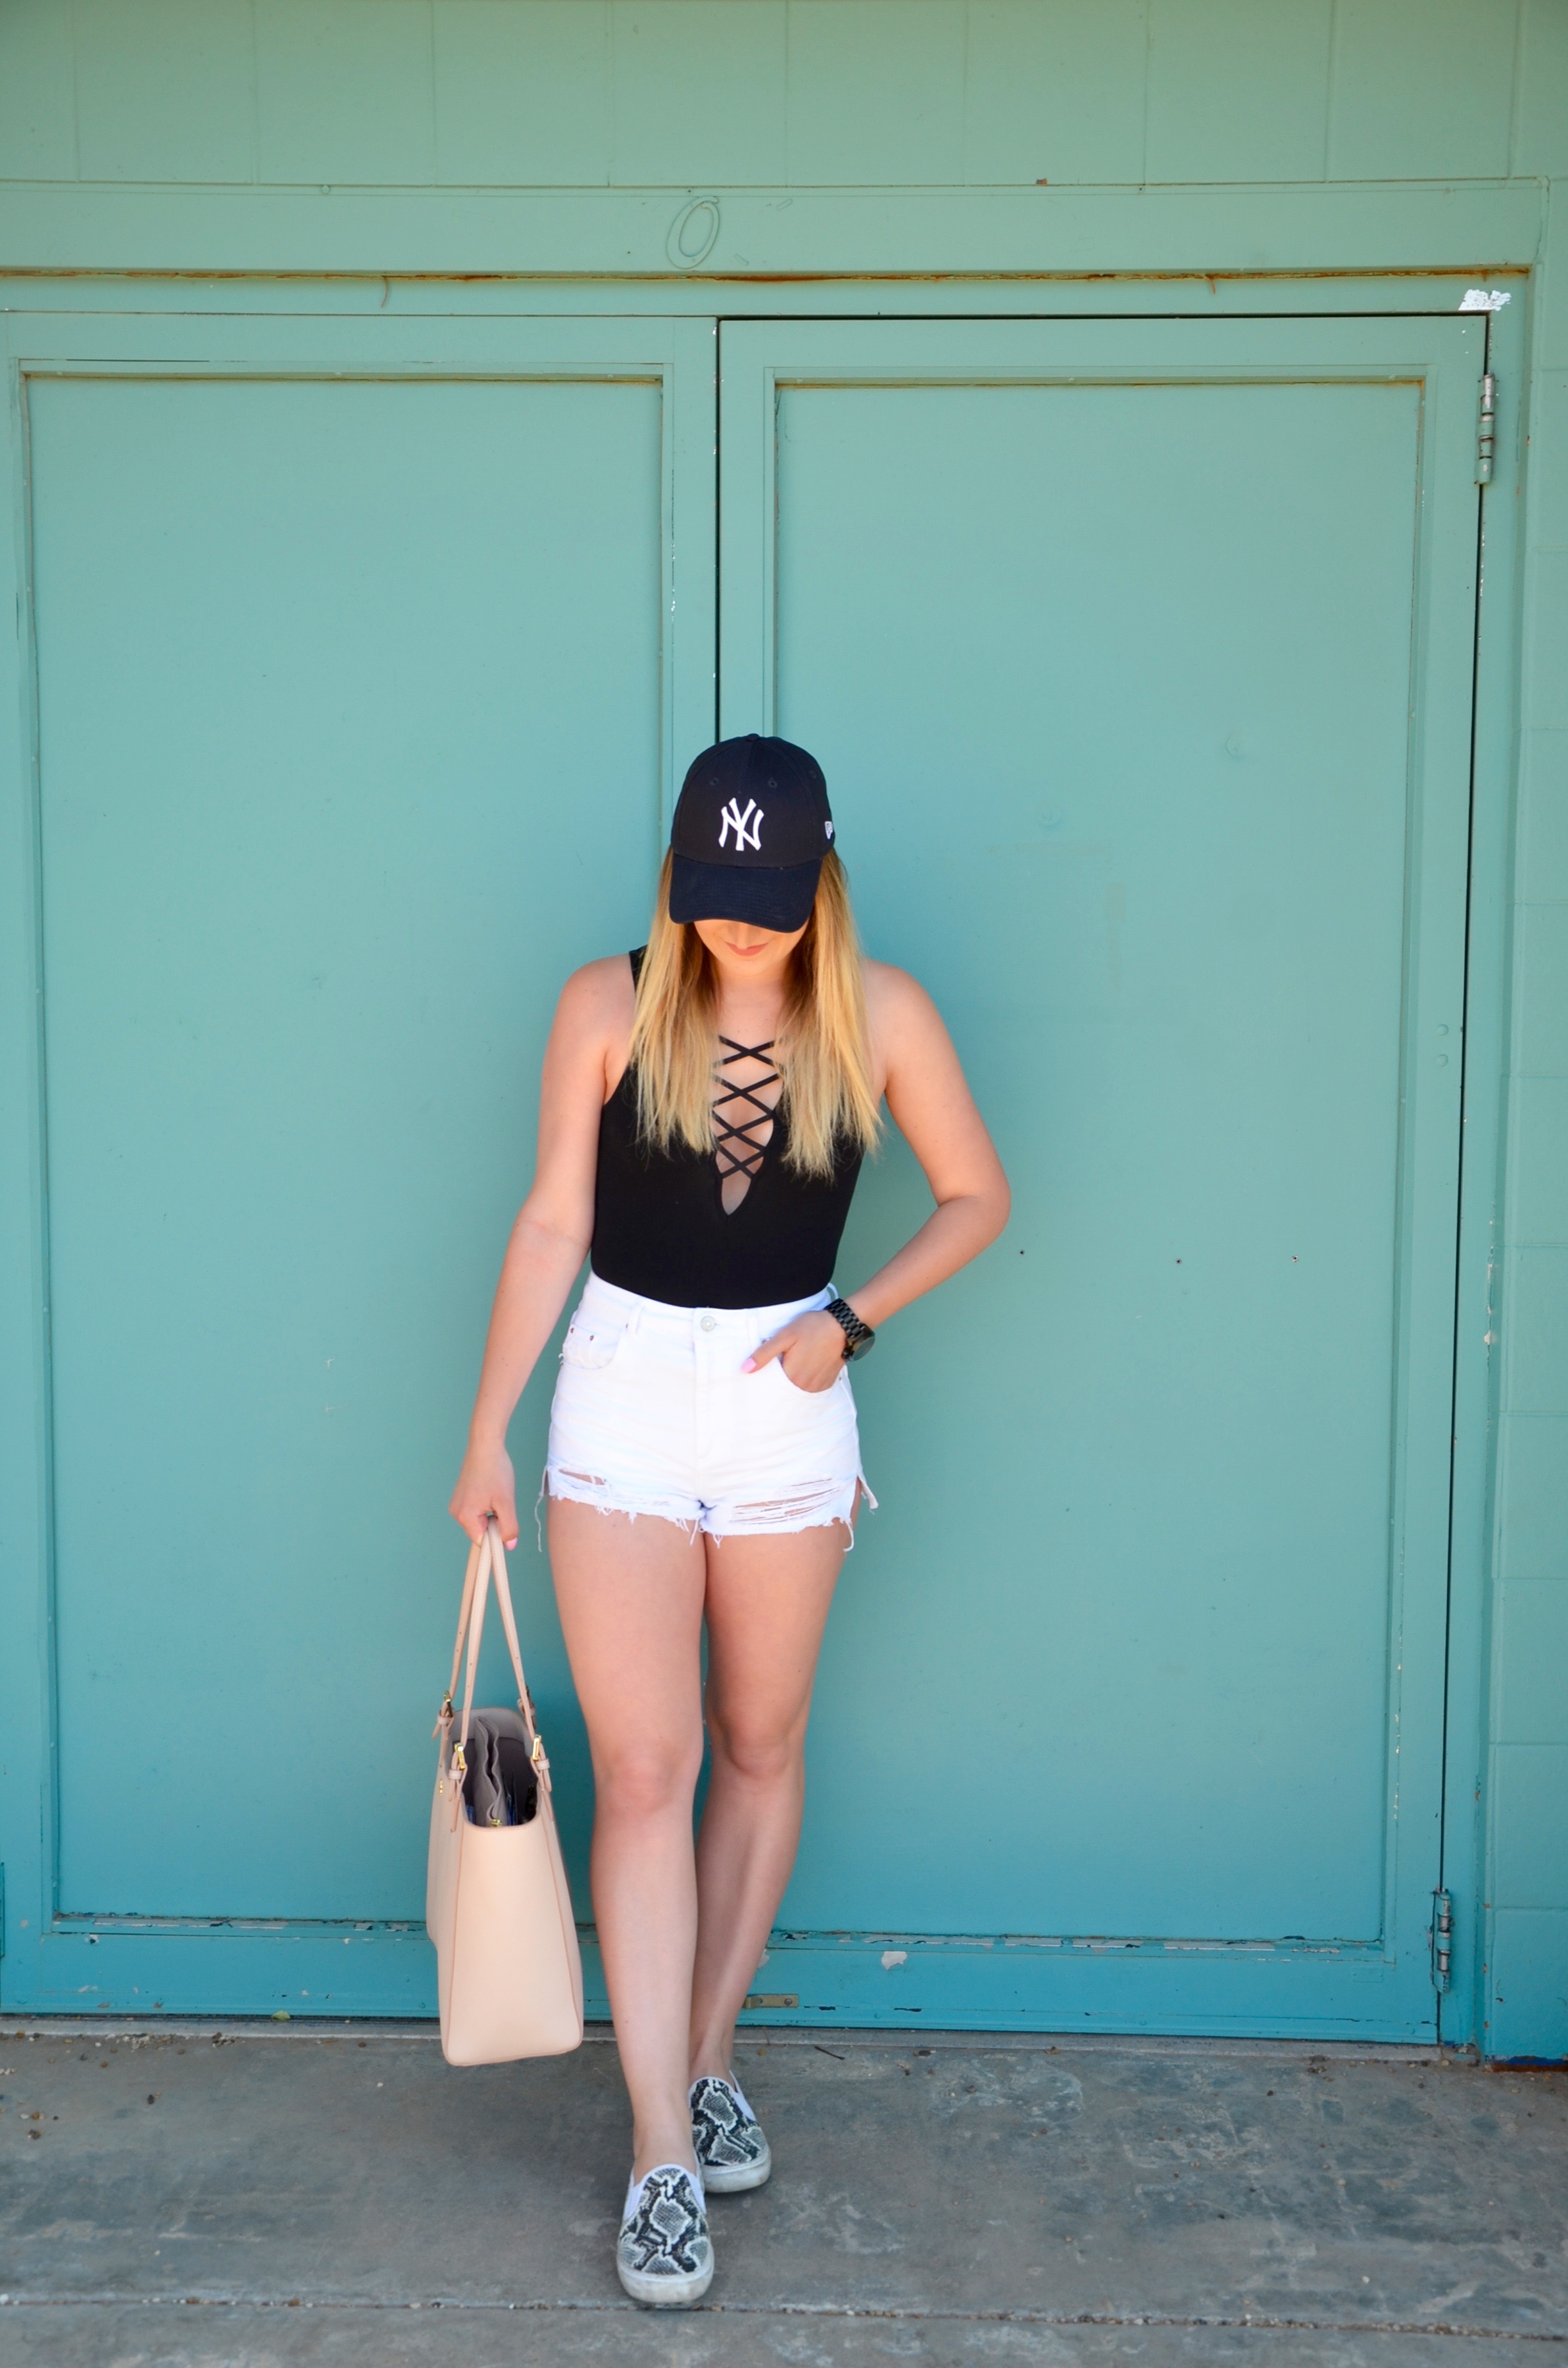 snake skin vans - Travel Outfit Of The Day by popular Texas style blogger Audrey Madison Stowe